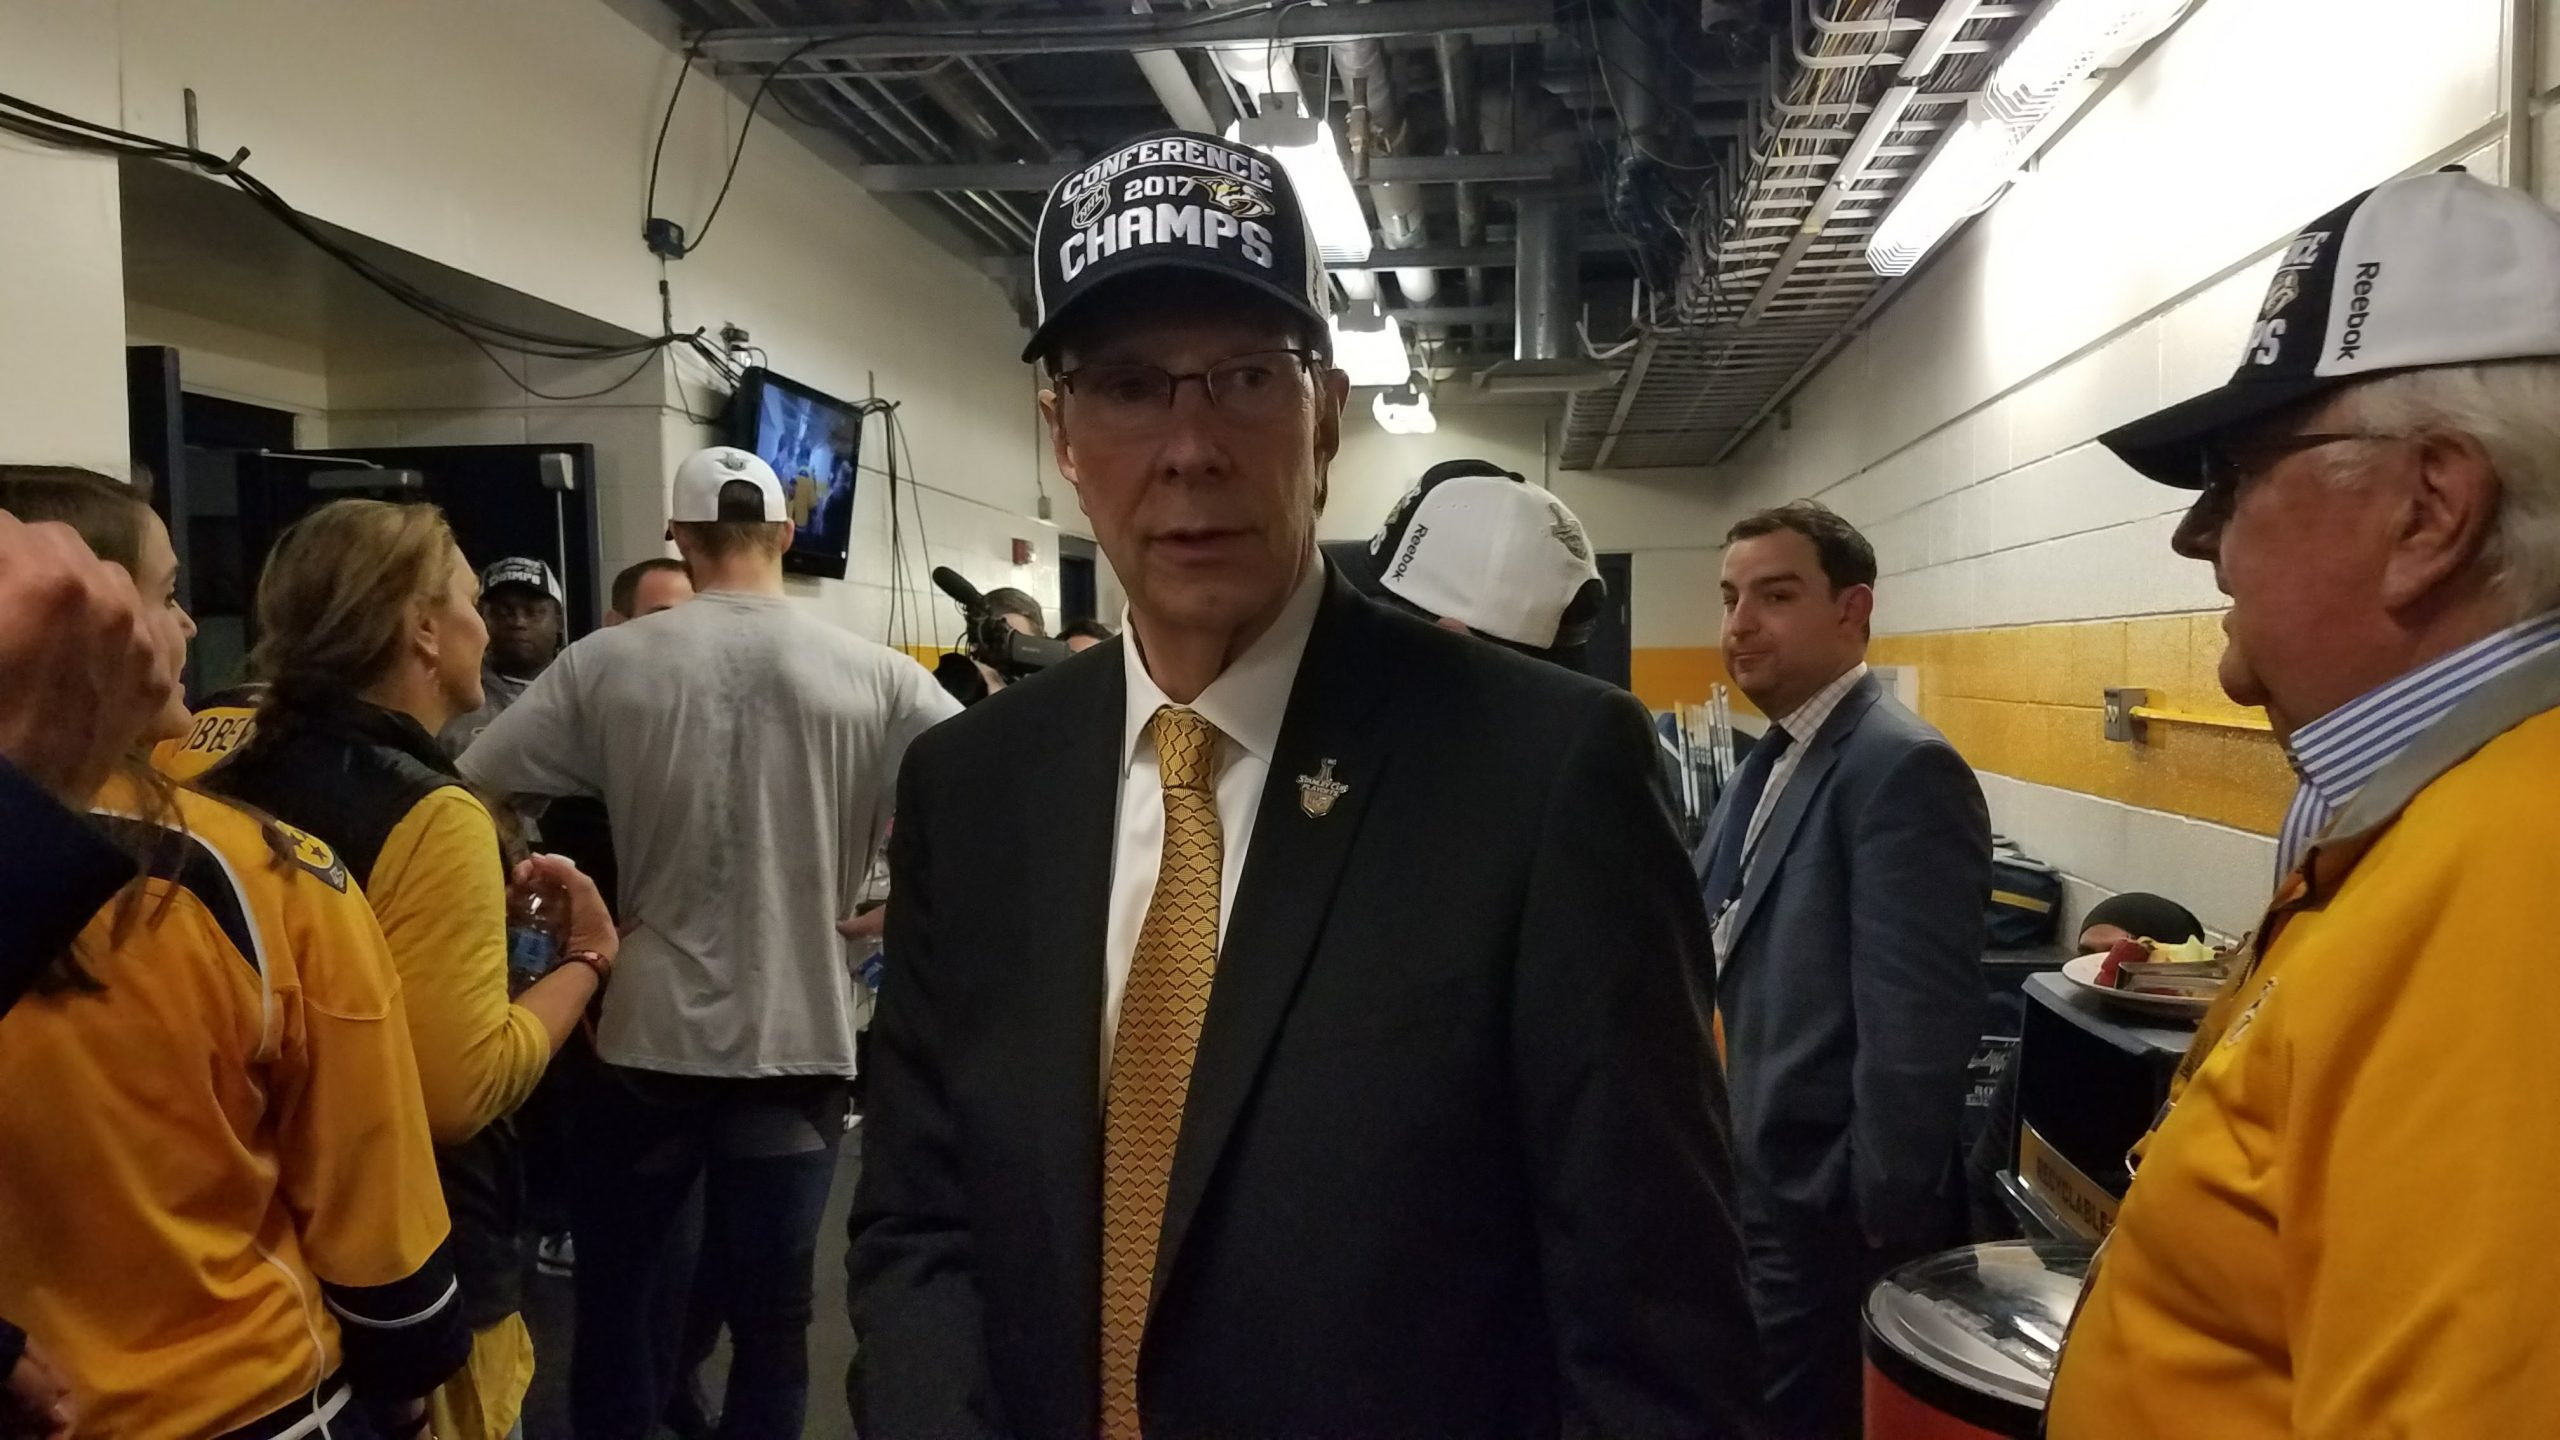 David-poile-wc-champs-hat-jeremy-k-gover